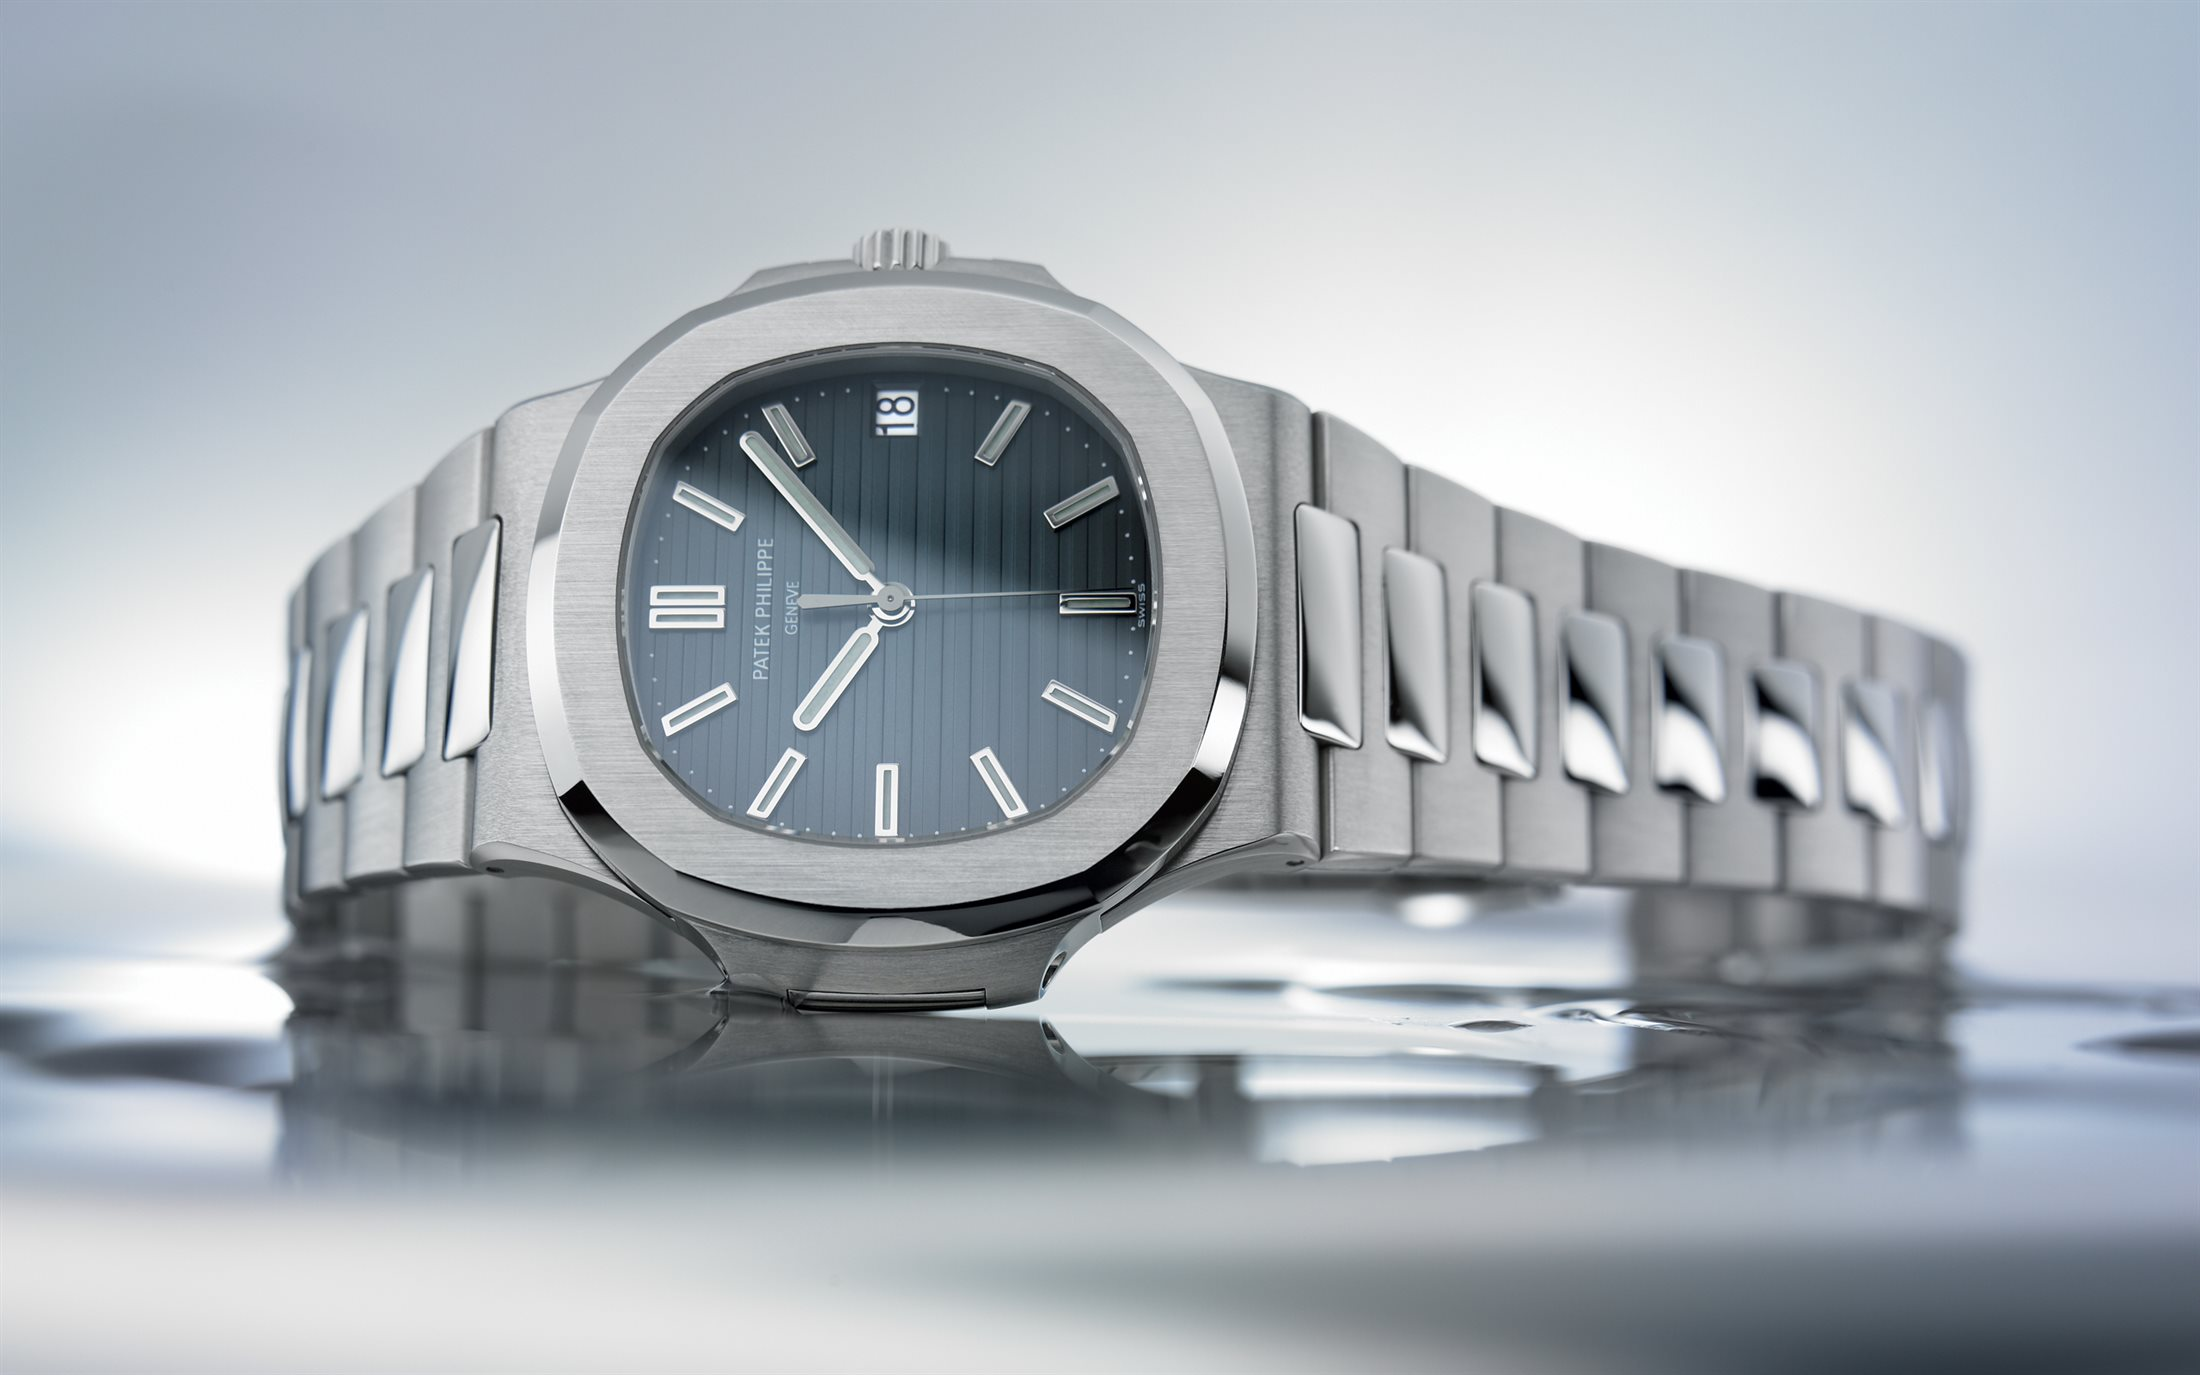 The Patek Philippe Nautilus sports a distinctive look of both sporty and elegant style.